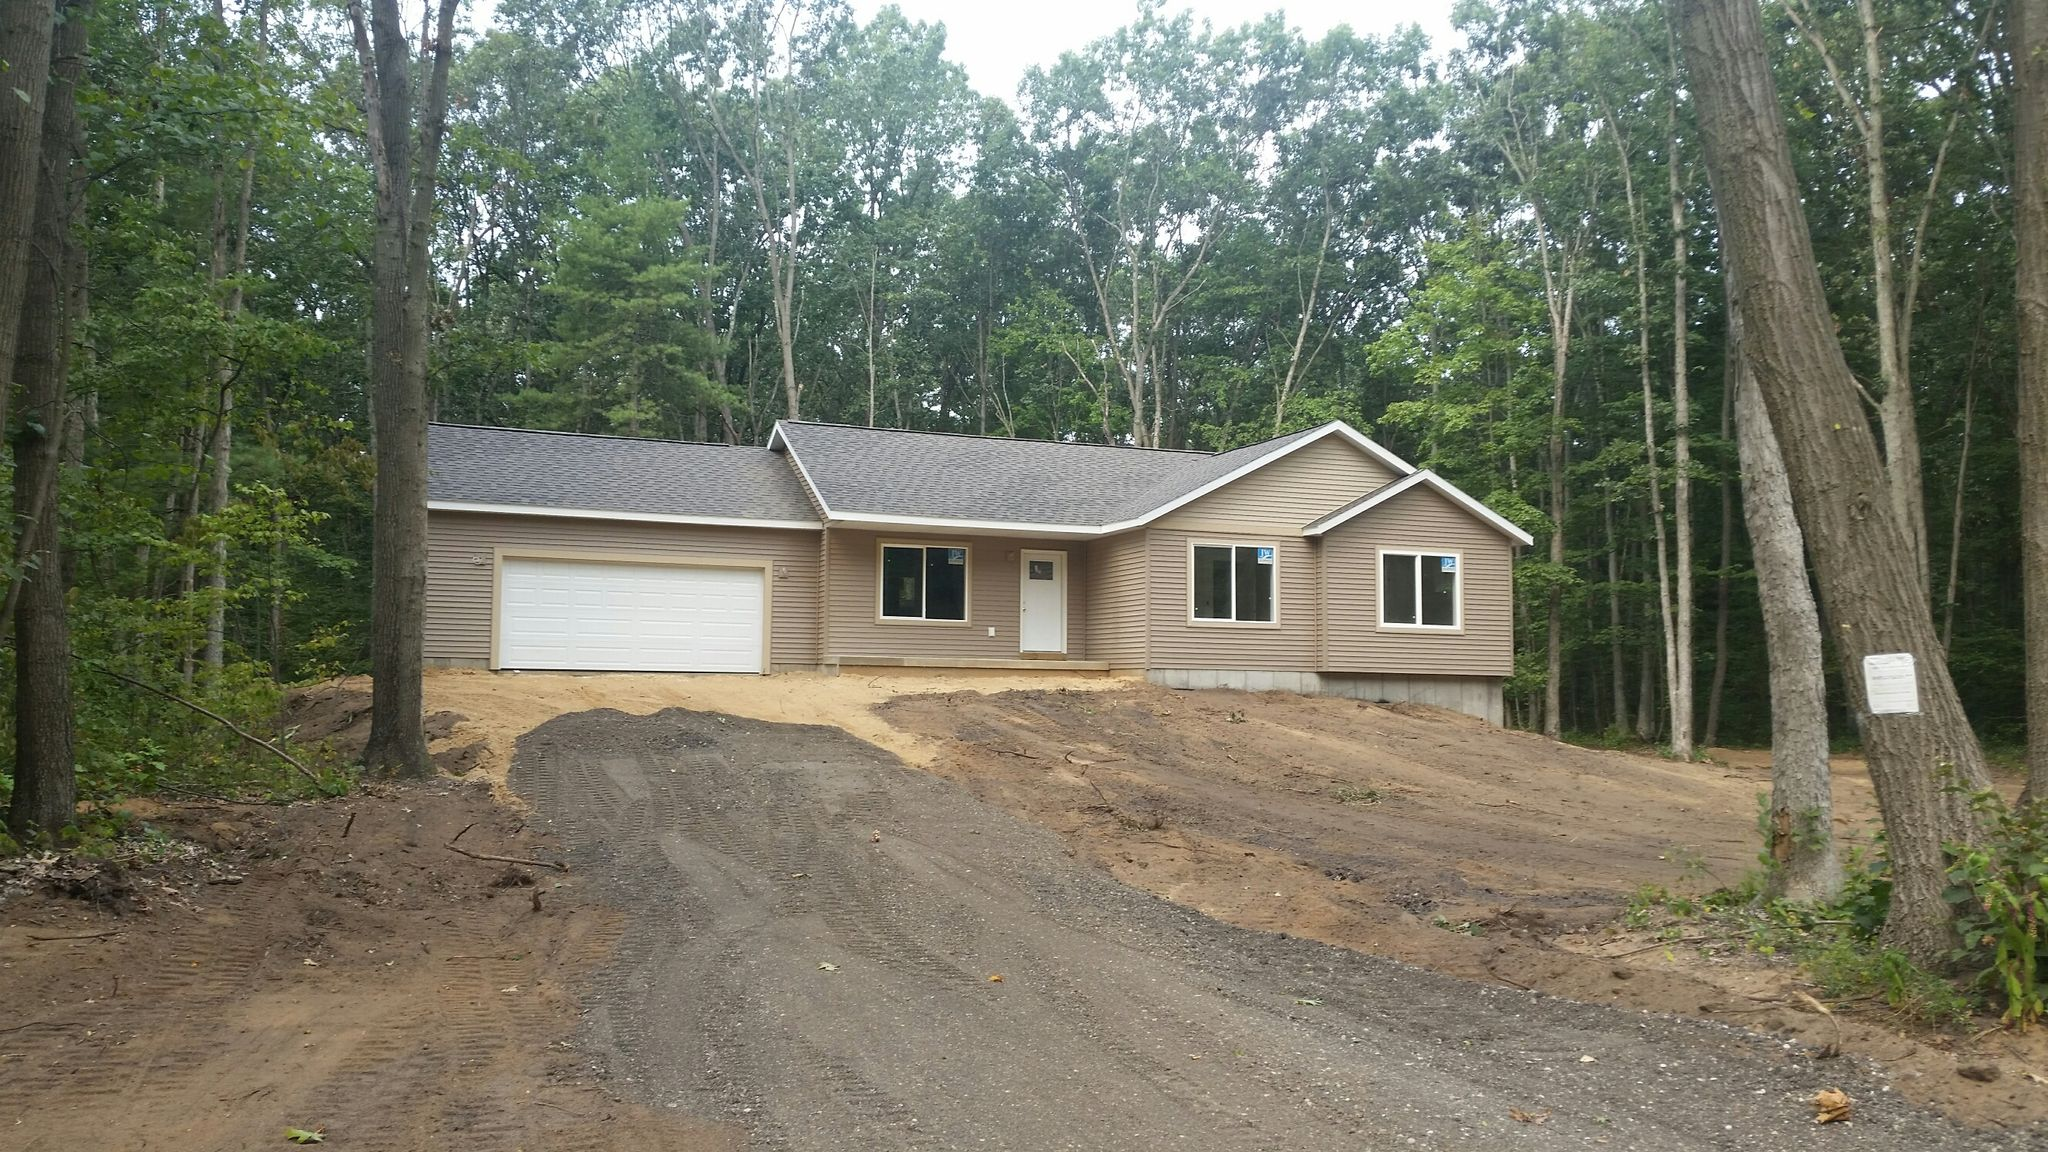 condo state haven barn mi grand cottage michigan cottages vacation rentals the